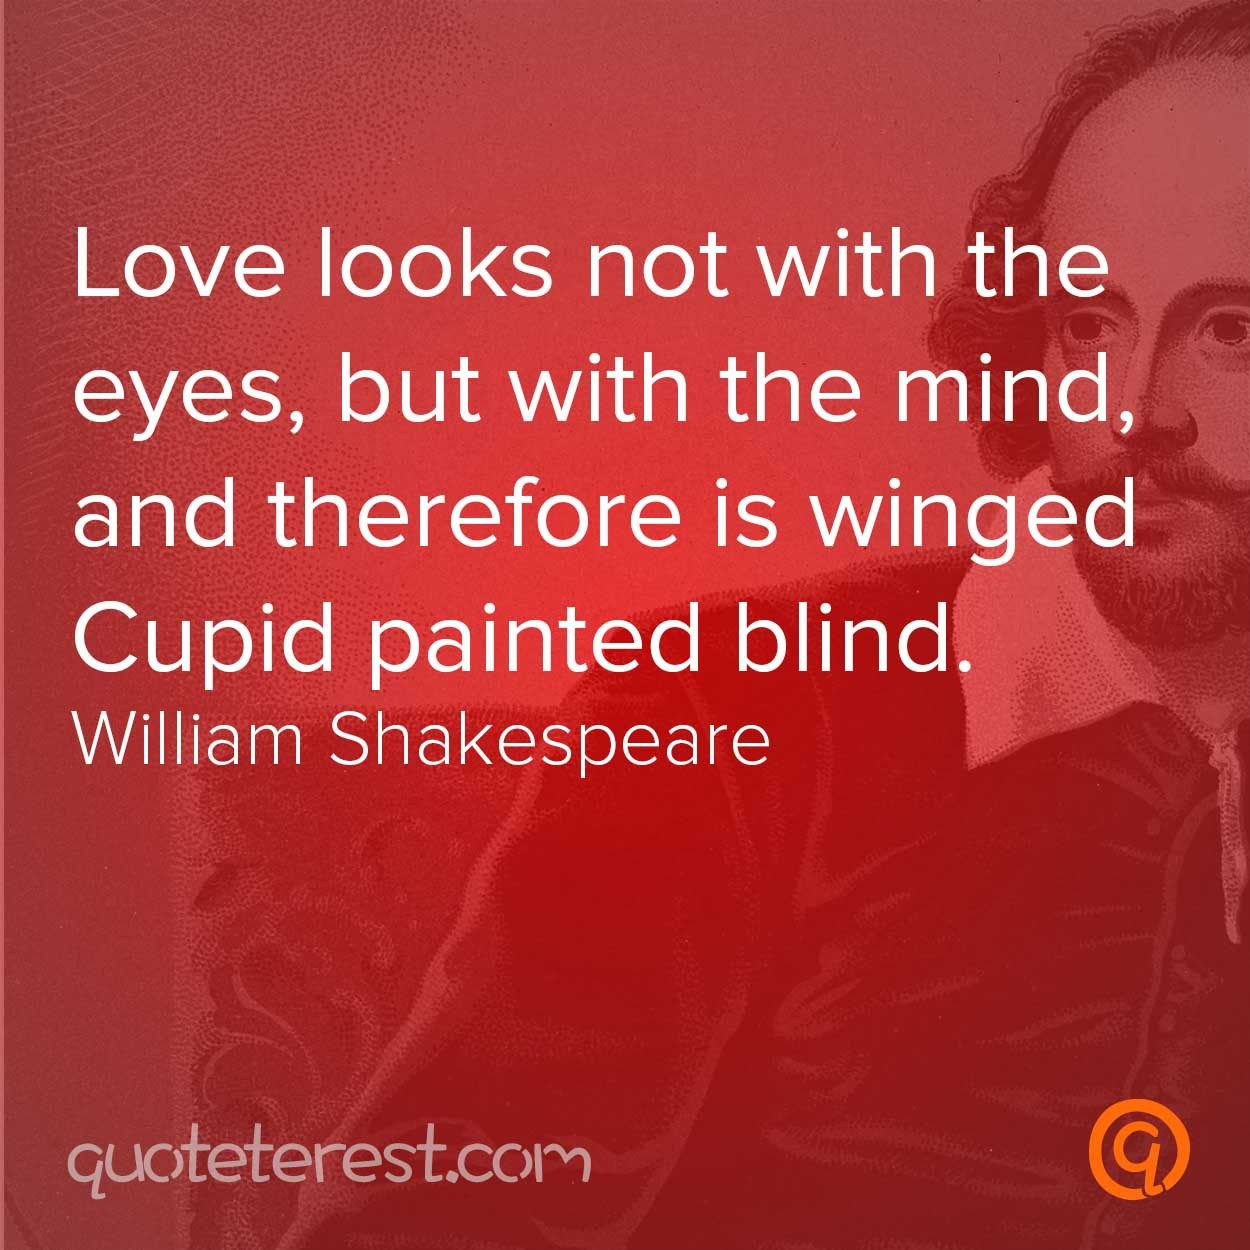 Shakespeare In Love Quotes Love Looks Not With The Eyes But With The Mind And Therefore Is